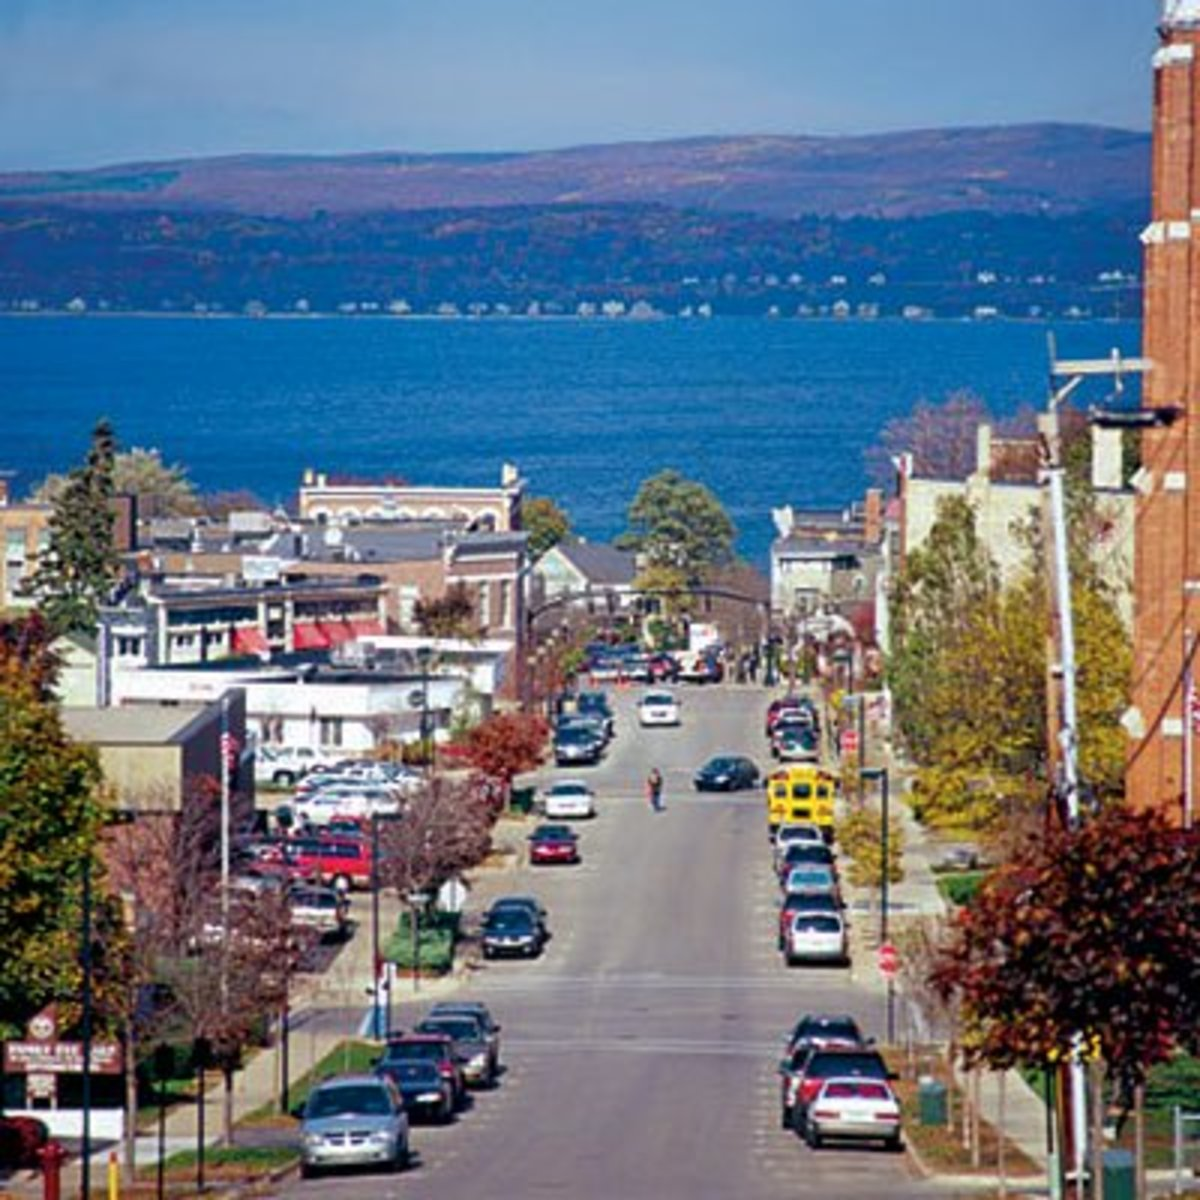 Downtown Petoskey looking towards Little Traverse Bay